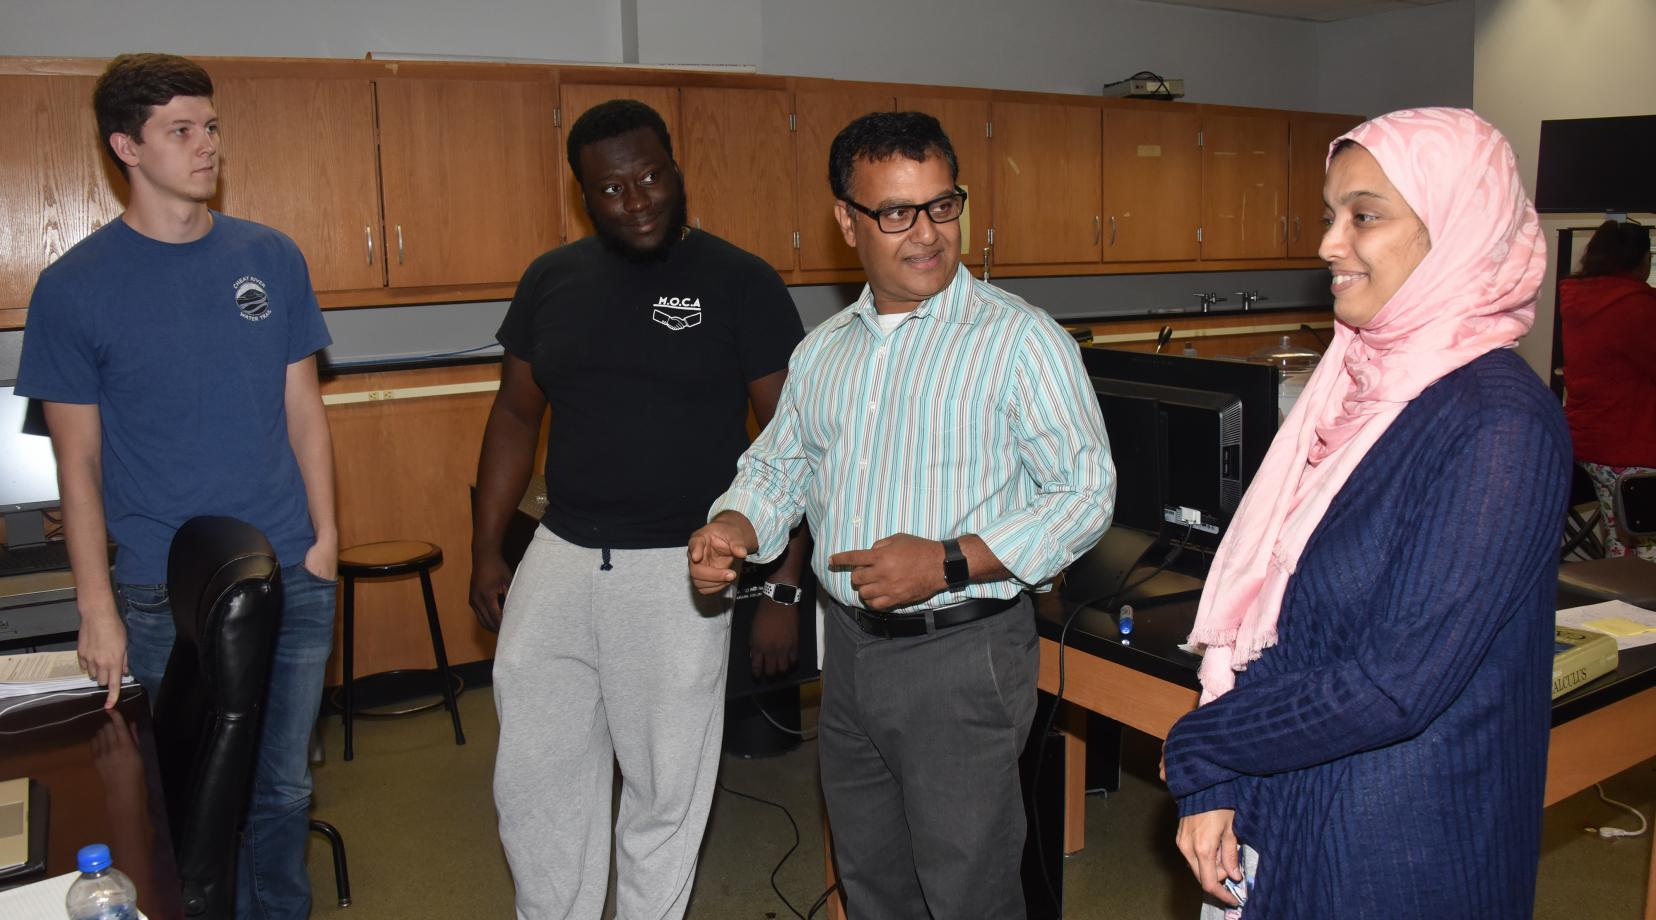 The DoD funded X-ray Diffraction System will not only be used for ongoing and future research project, but also it will be used an advanced technology that science students (like the ones Dr. Mukti Rana is chatting with here) can be exposed to and trained to use.